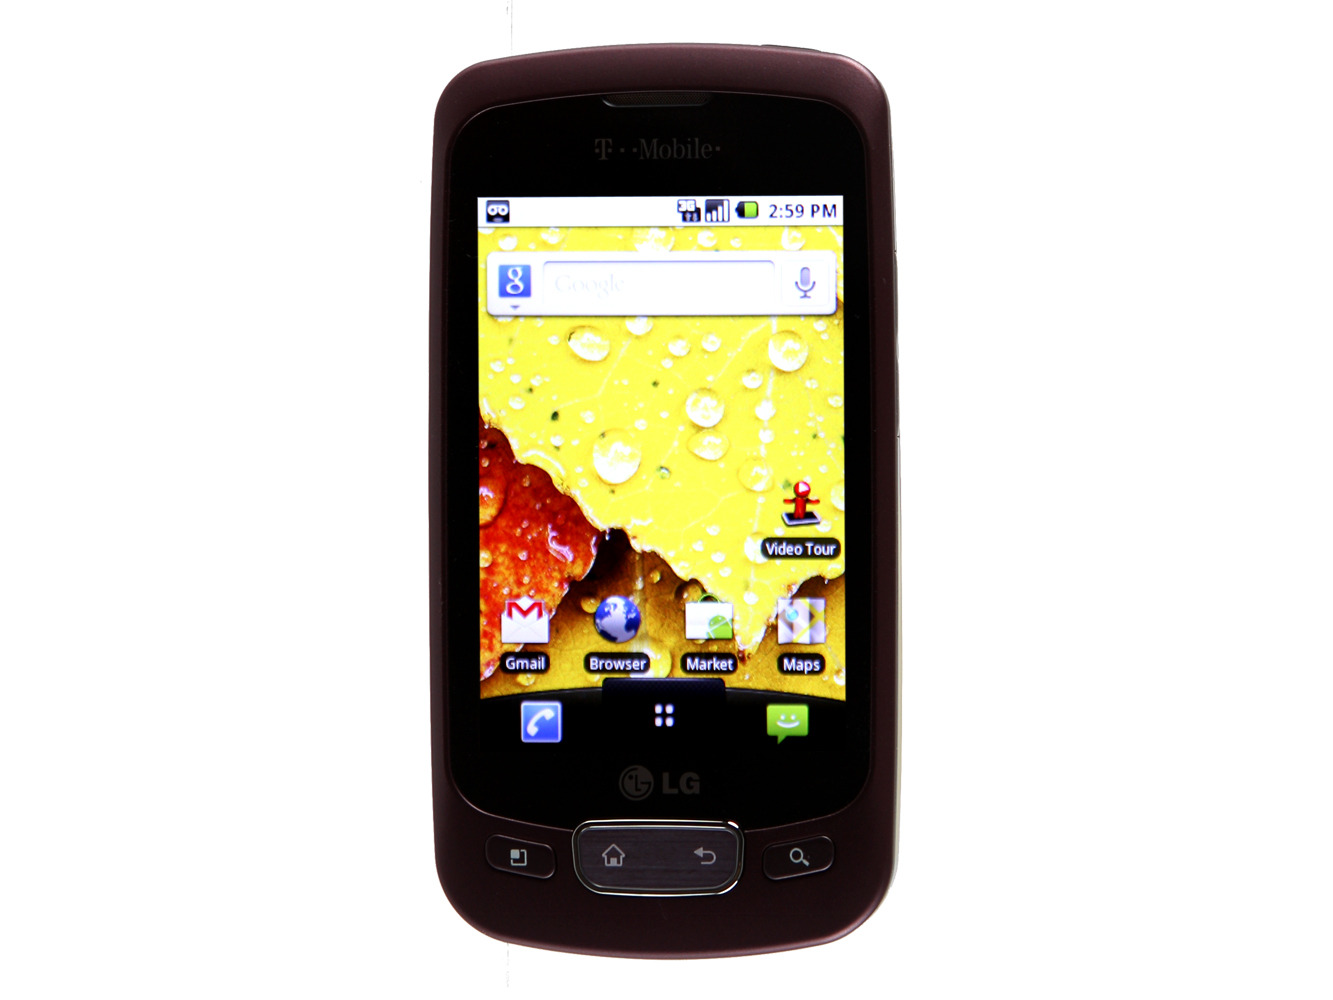 LG Optimus T - burgundy (T-Mobile)